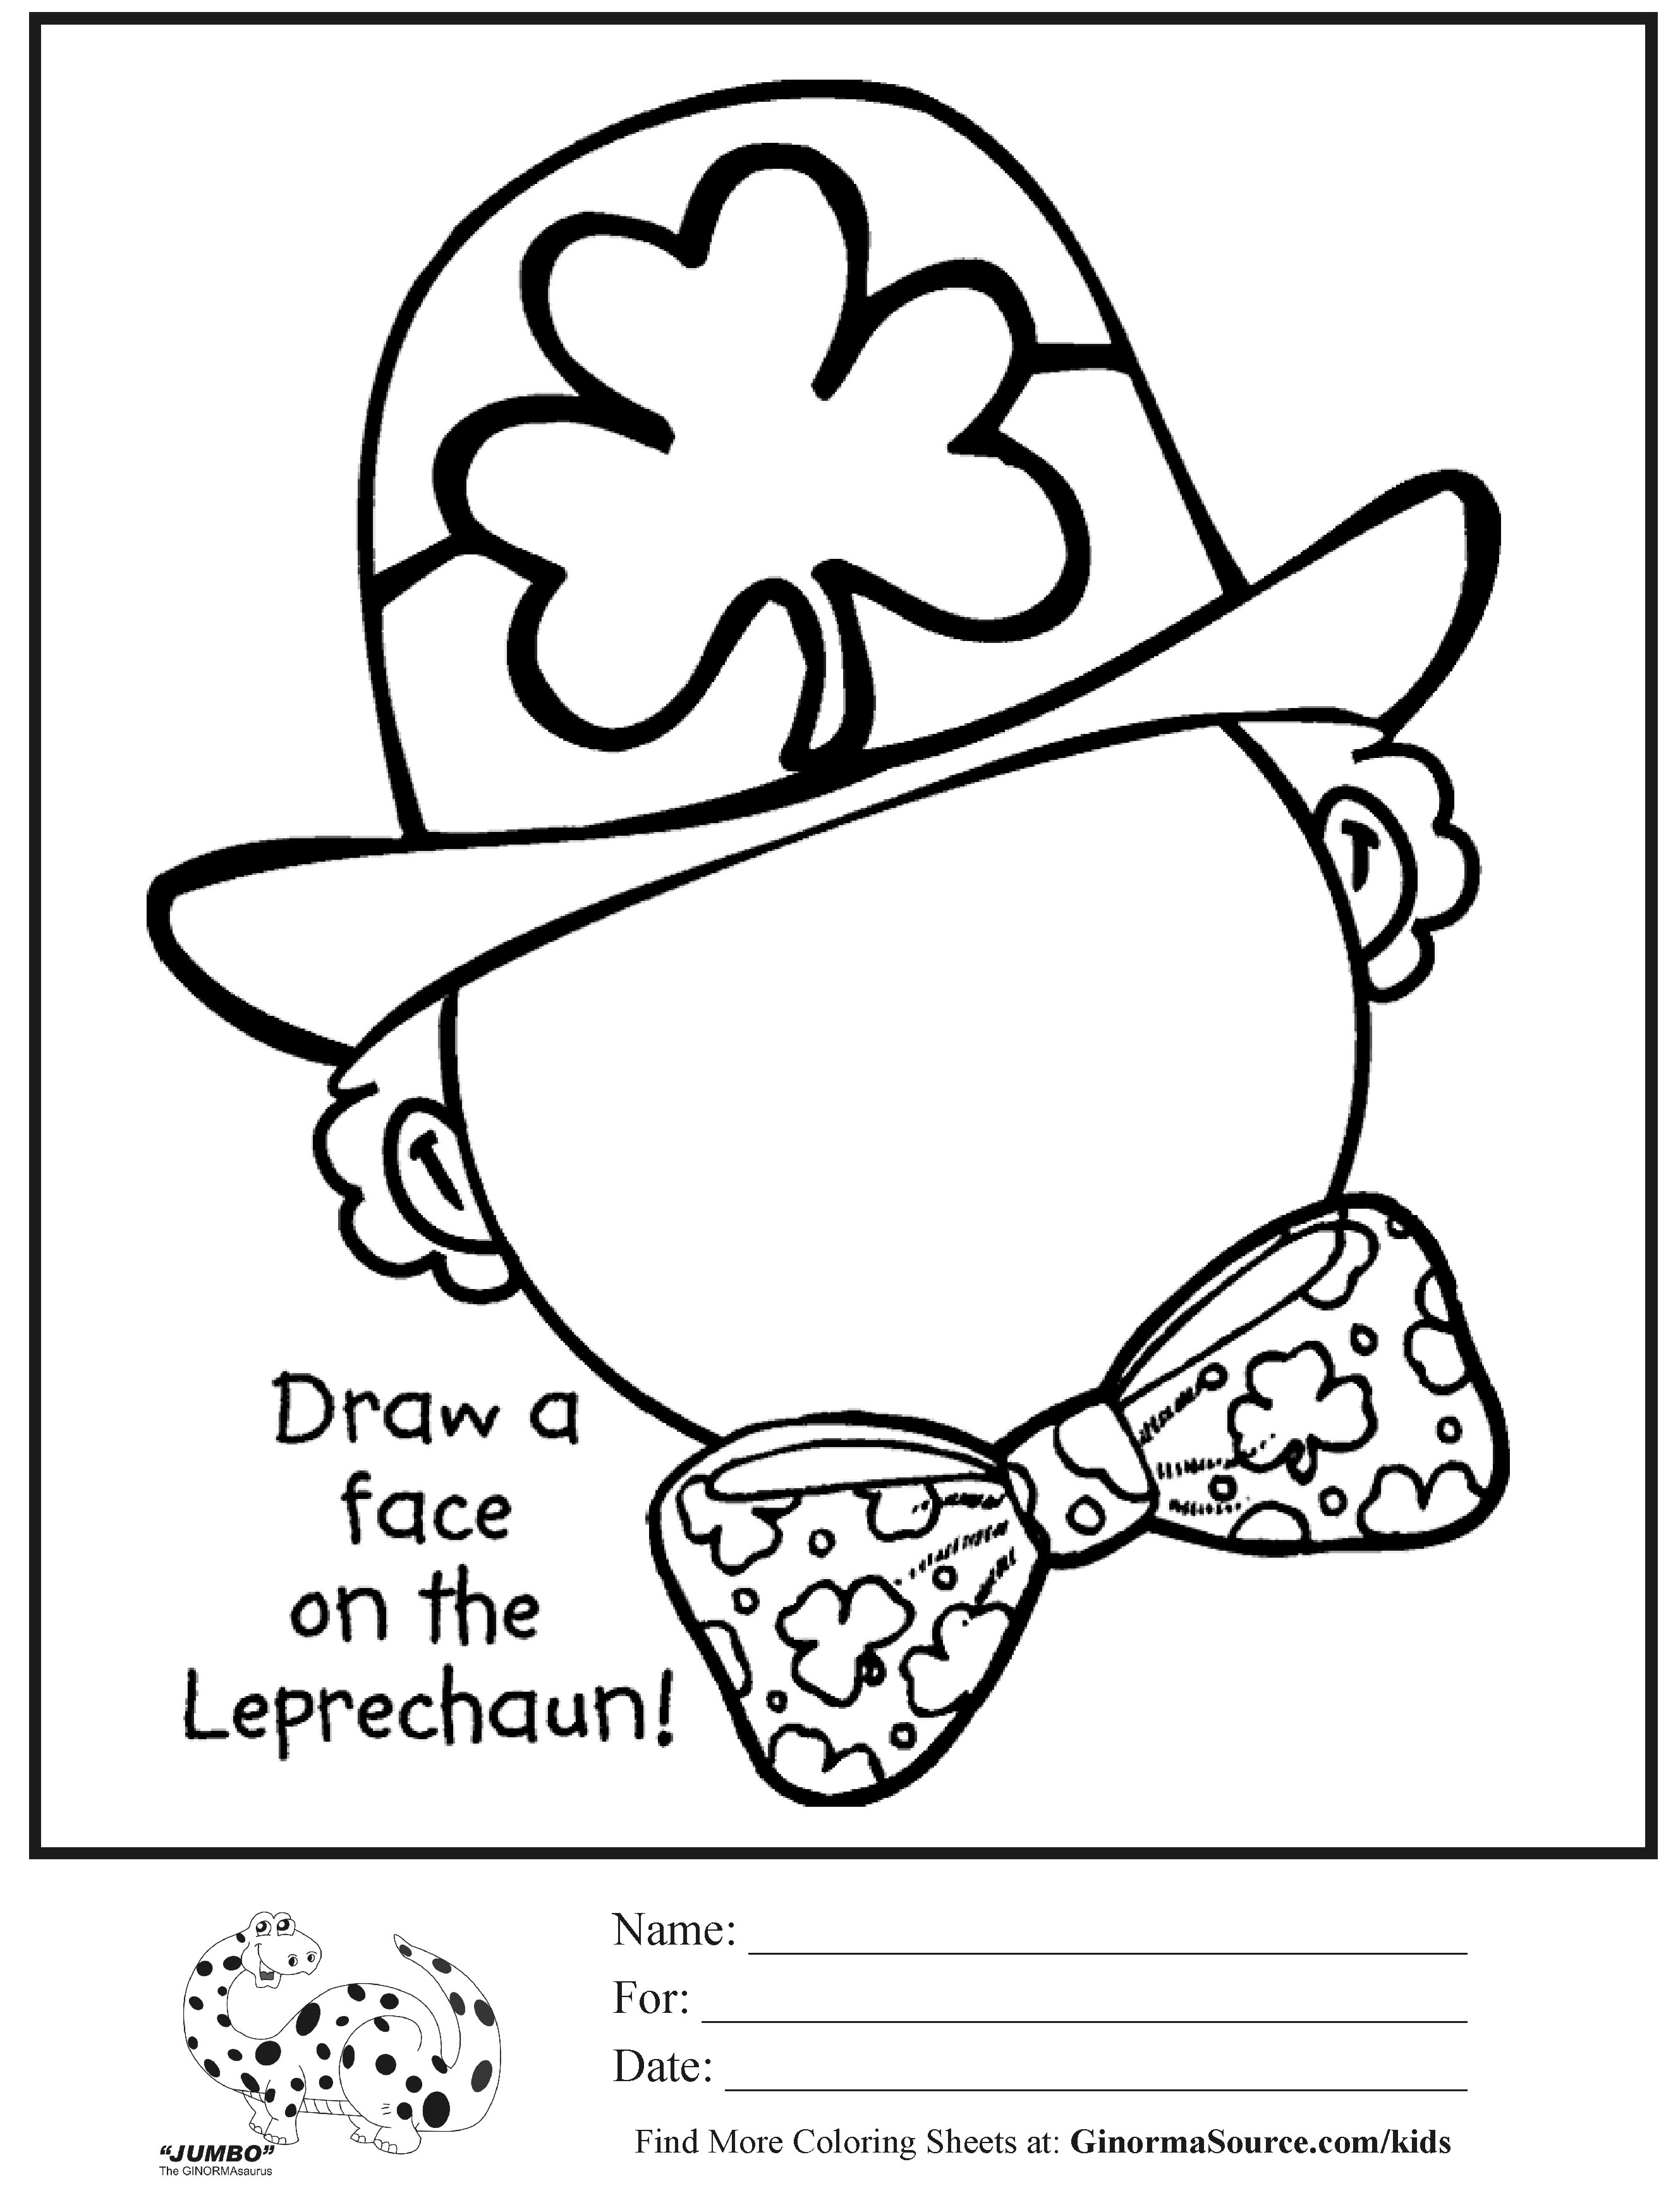 33 St Patrick S Day Coloring Pages Free Printable Coloring Pages